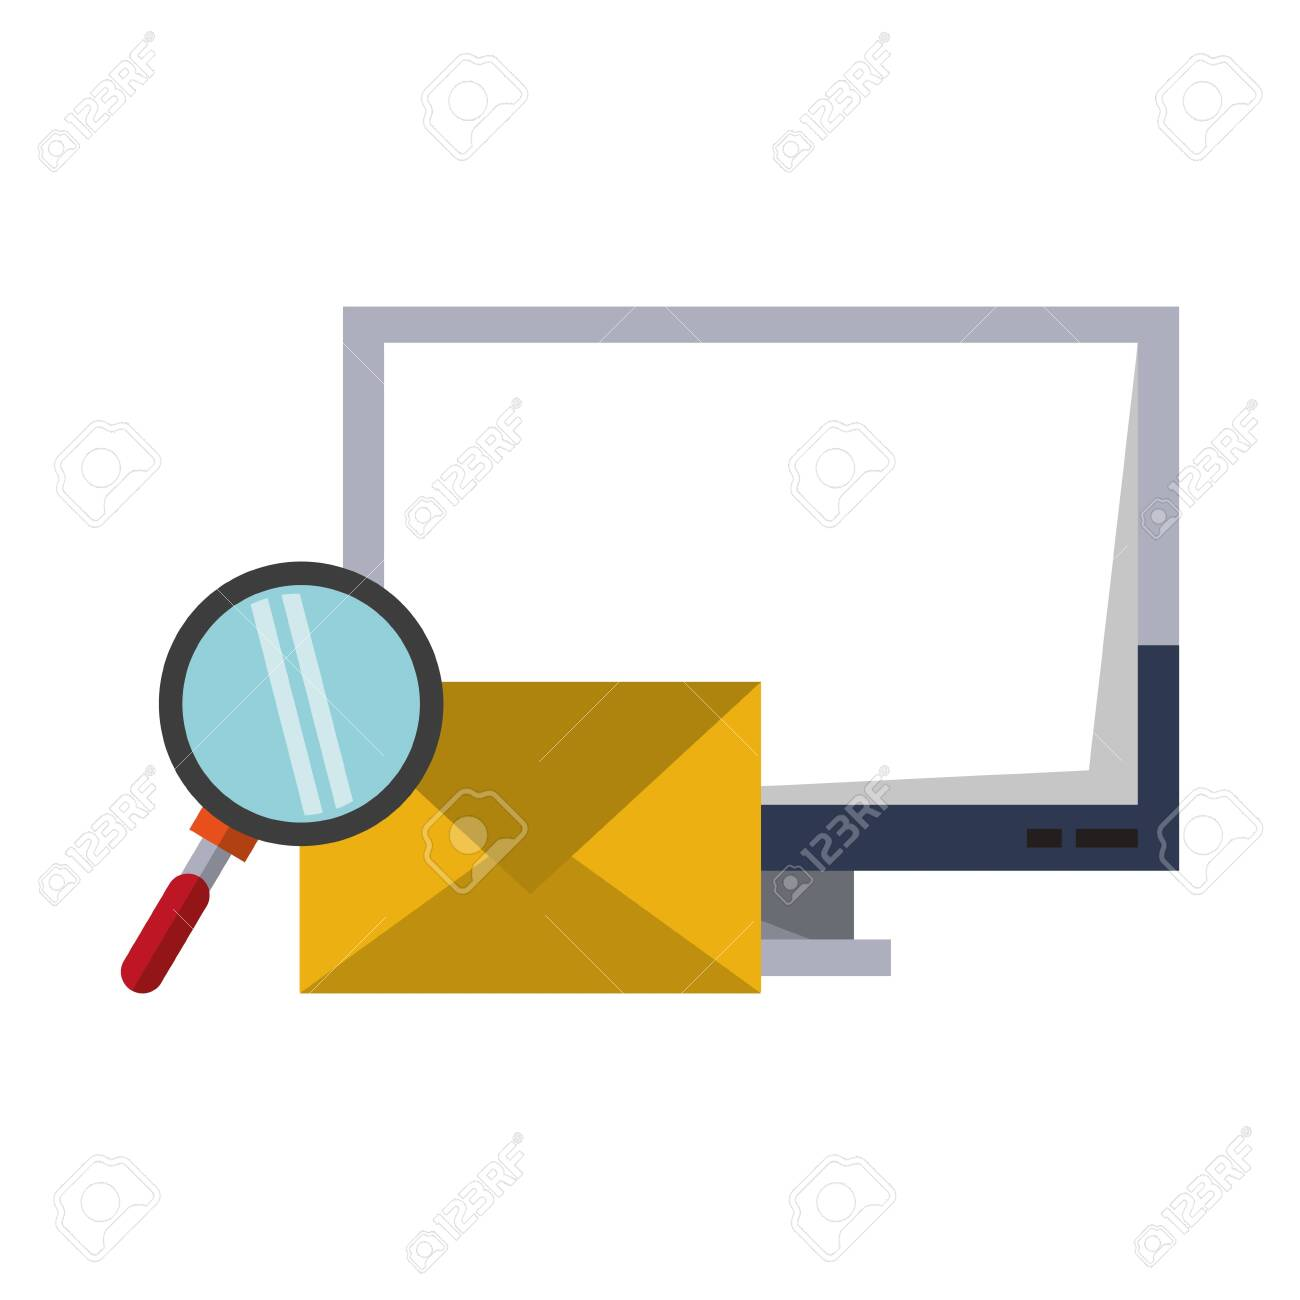 Computer email search business correspondance vector illustration graphic desing - 122895911